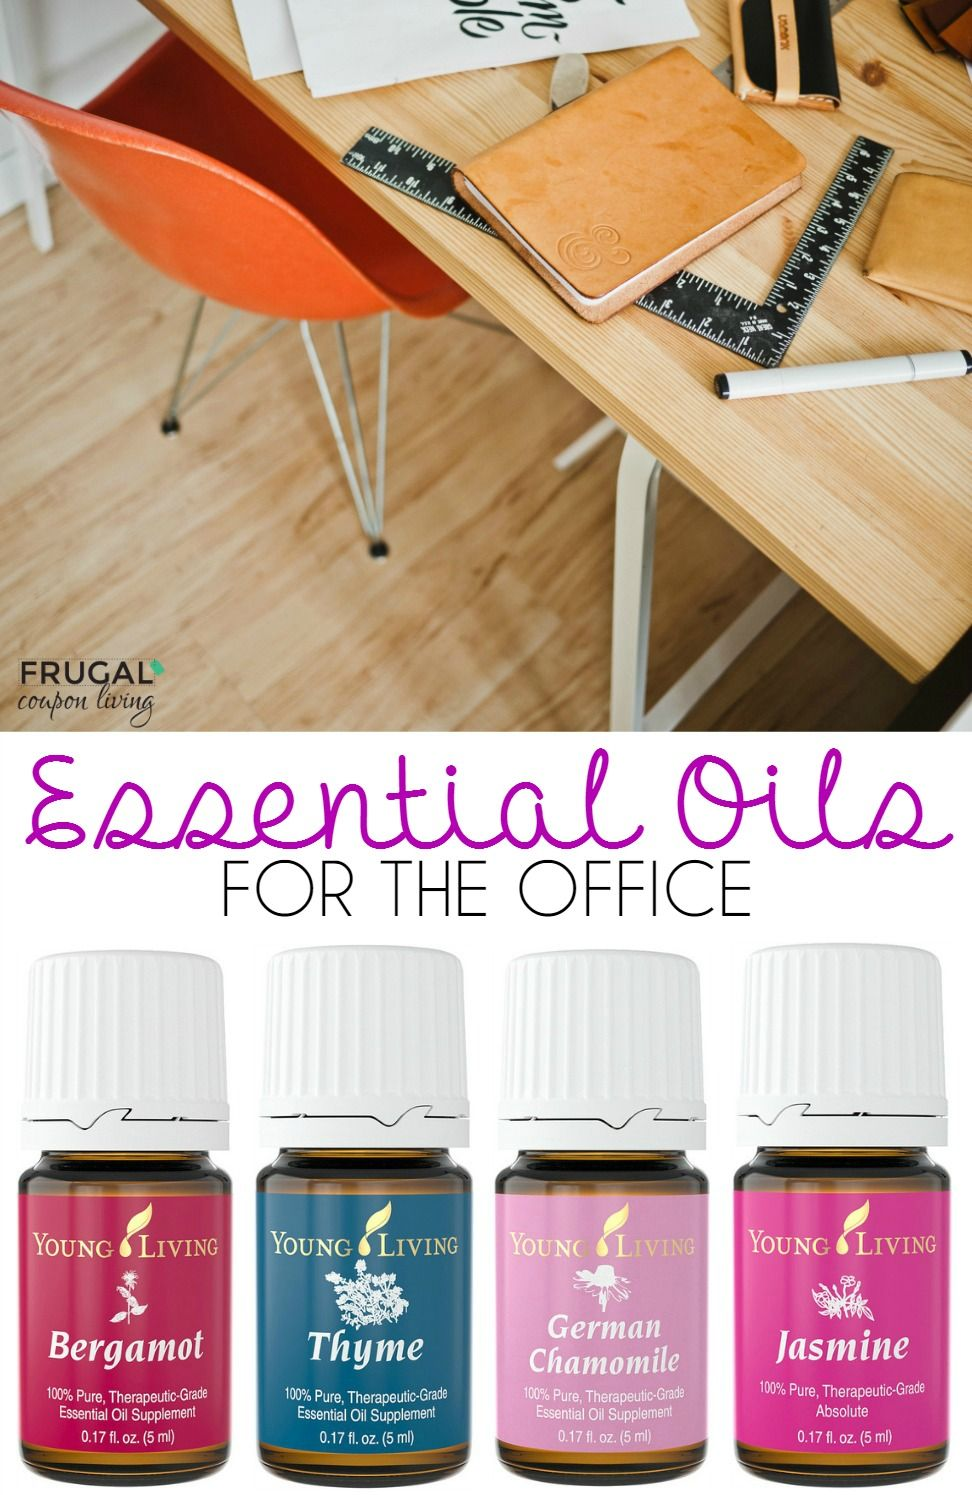 These Portable Aromatherapy Oils Are My New Stay-Healthy-While-Traveling Essentials These Portable Aromatherapy Oils Are My New Stay-Healthy-While-Traveling Essentials new pictures